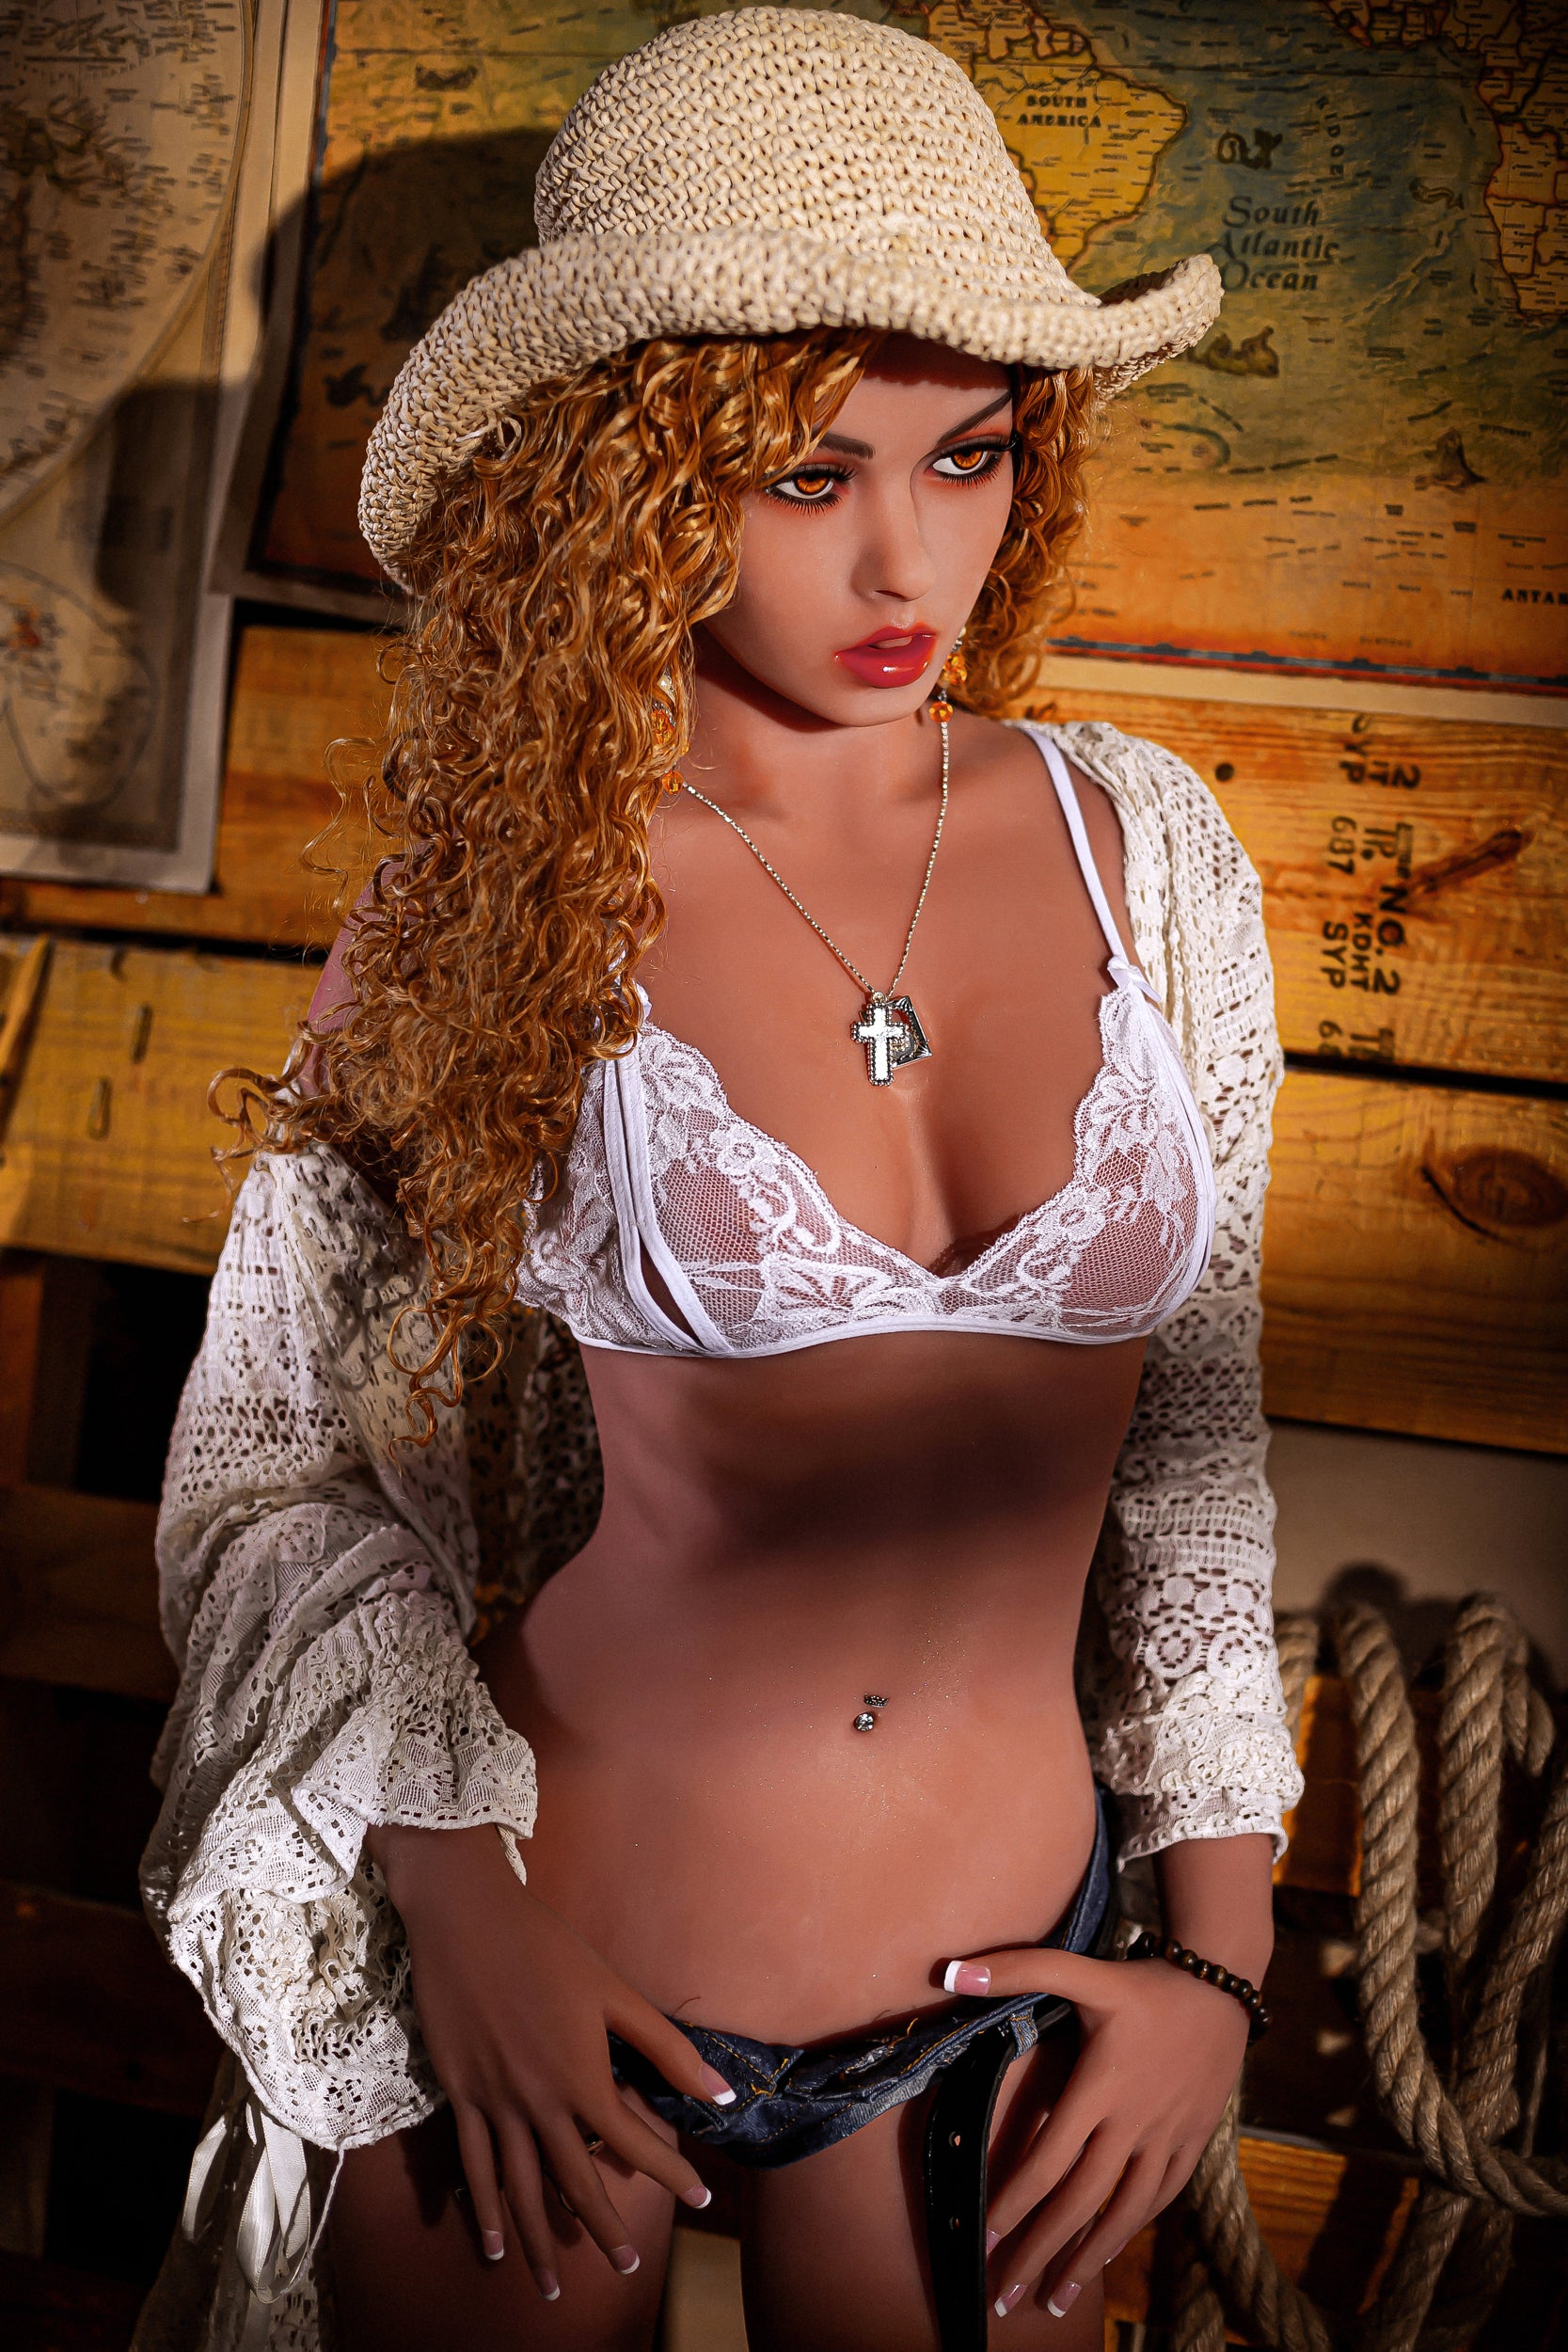 Kennedy - Cow Girl Sex Doll